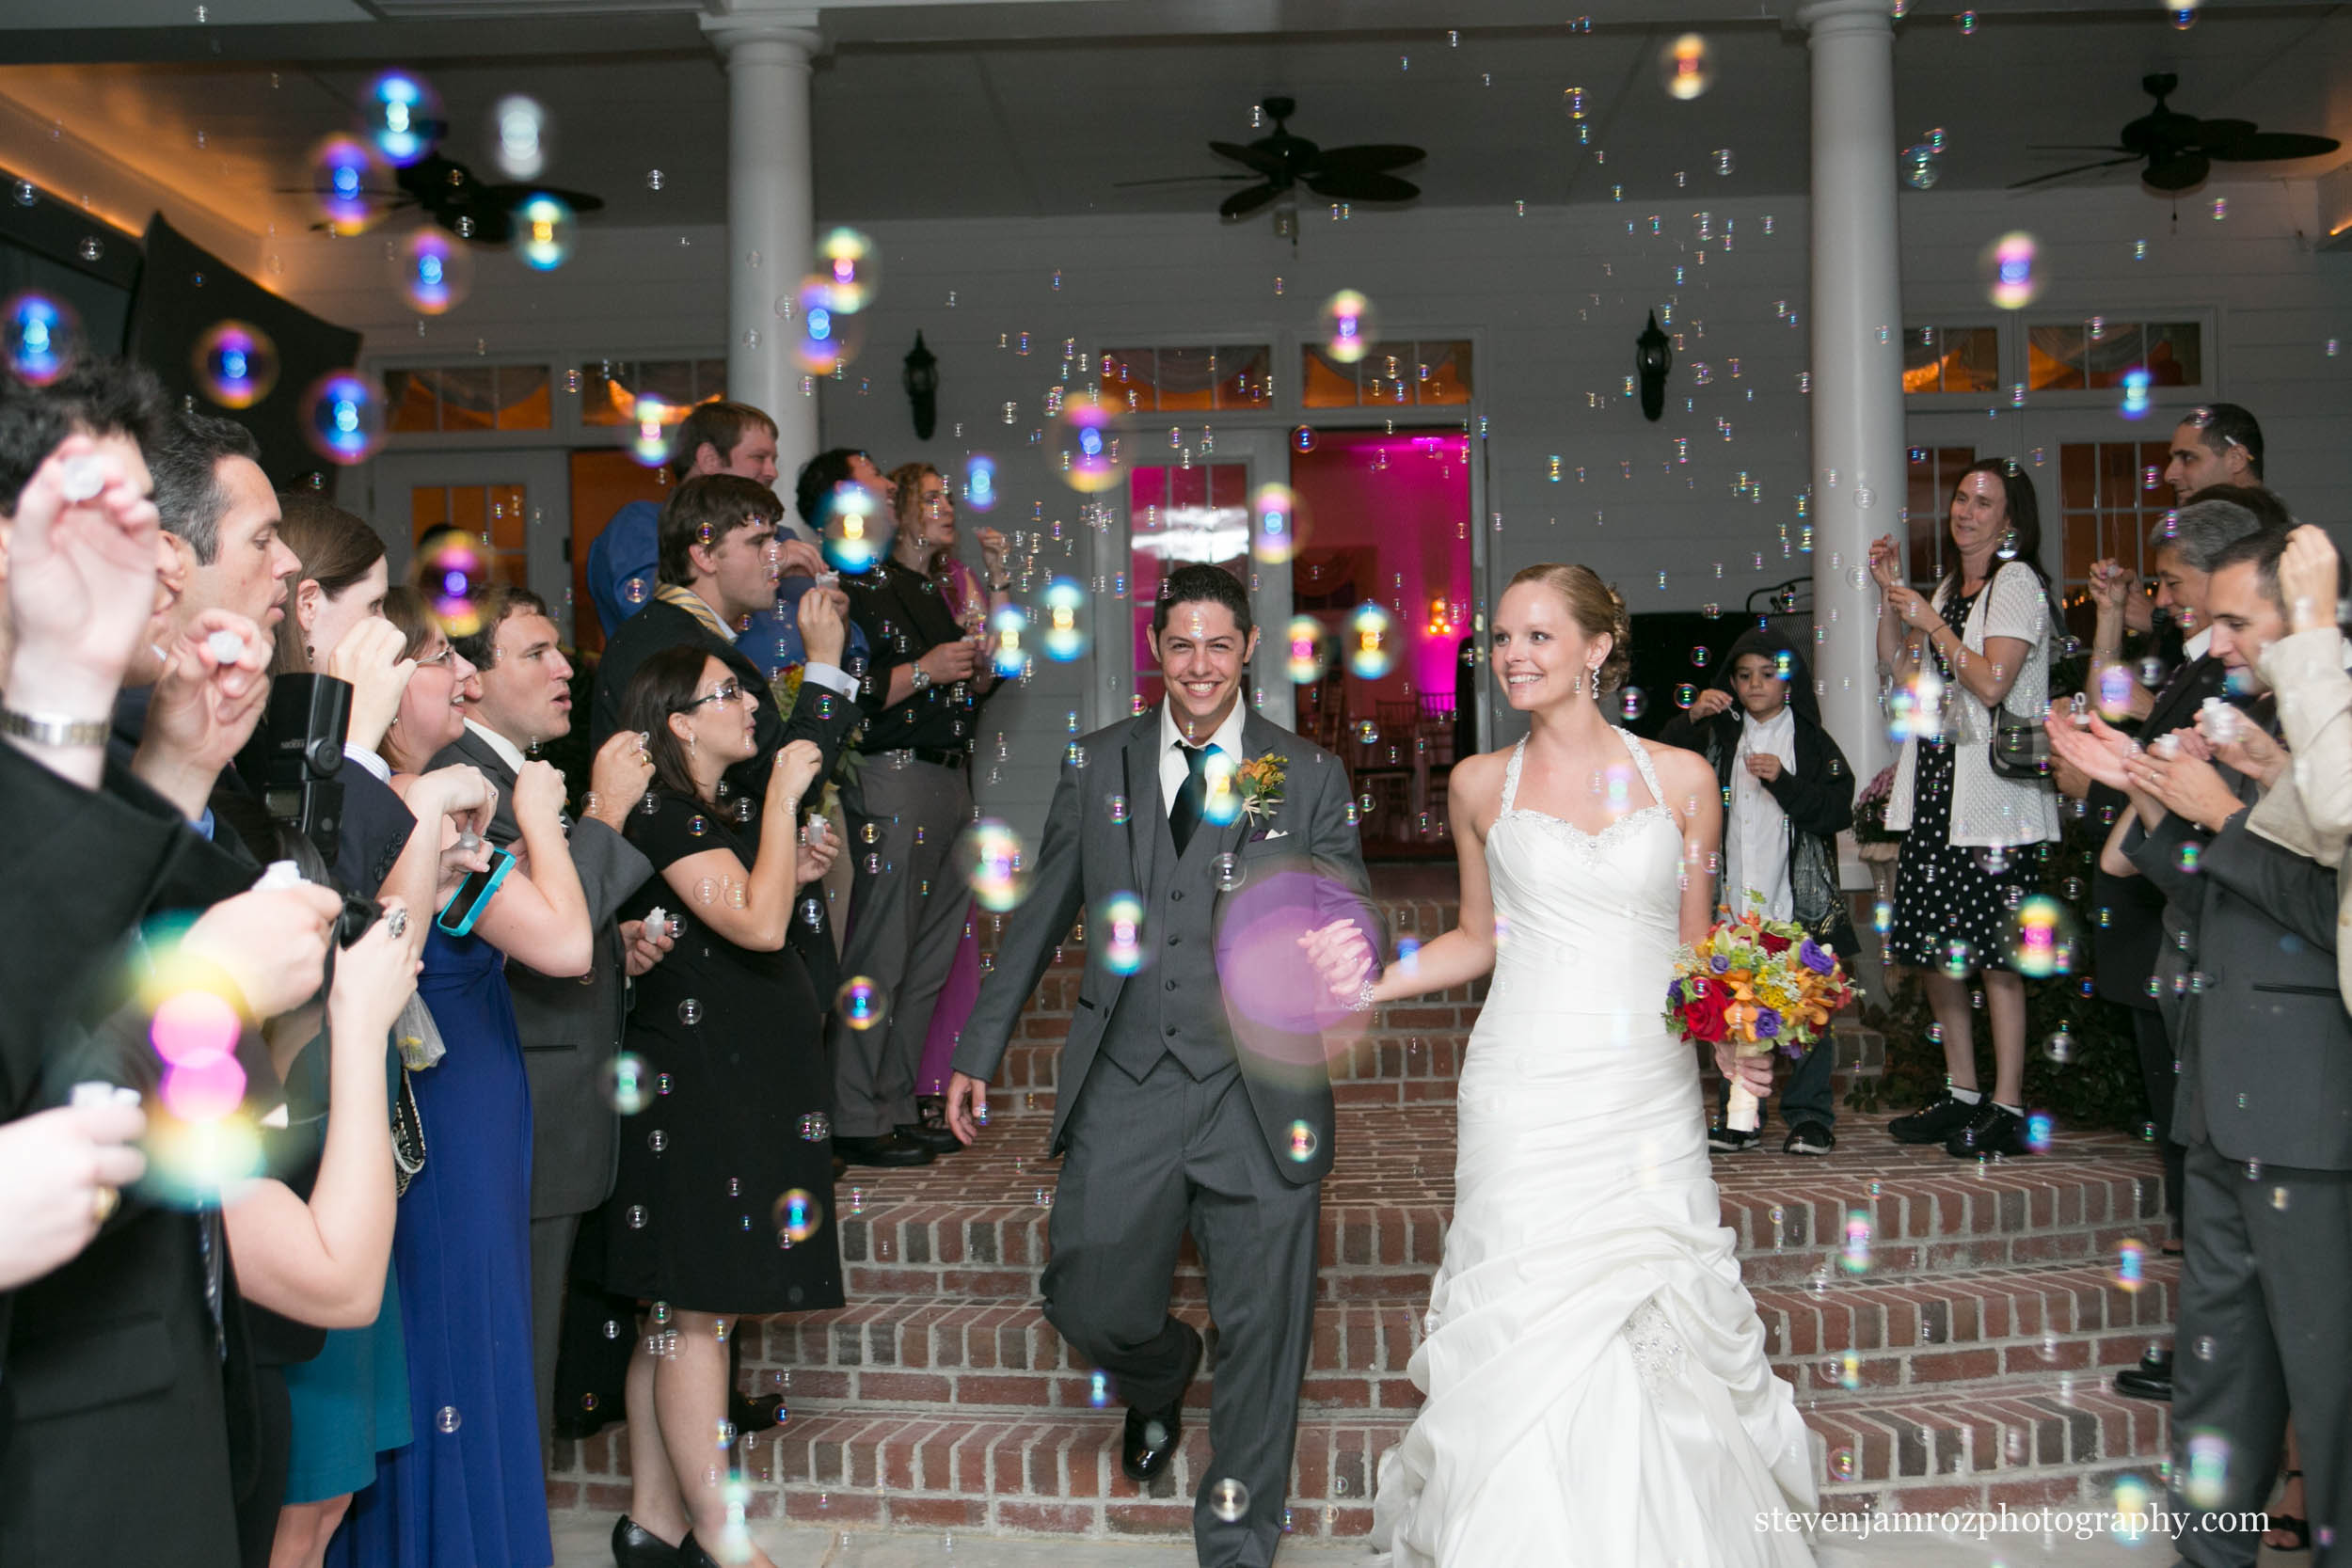 reception-grand-ballroom-hudson-manor-steven-jamroz-photography-0419.jpg